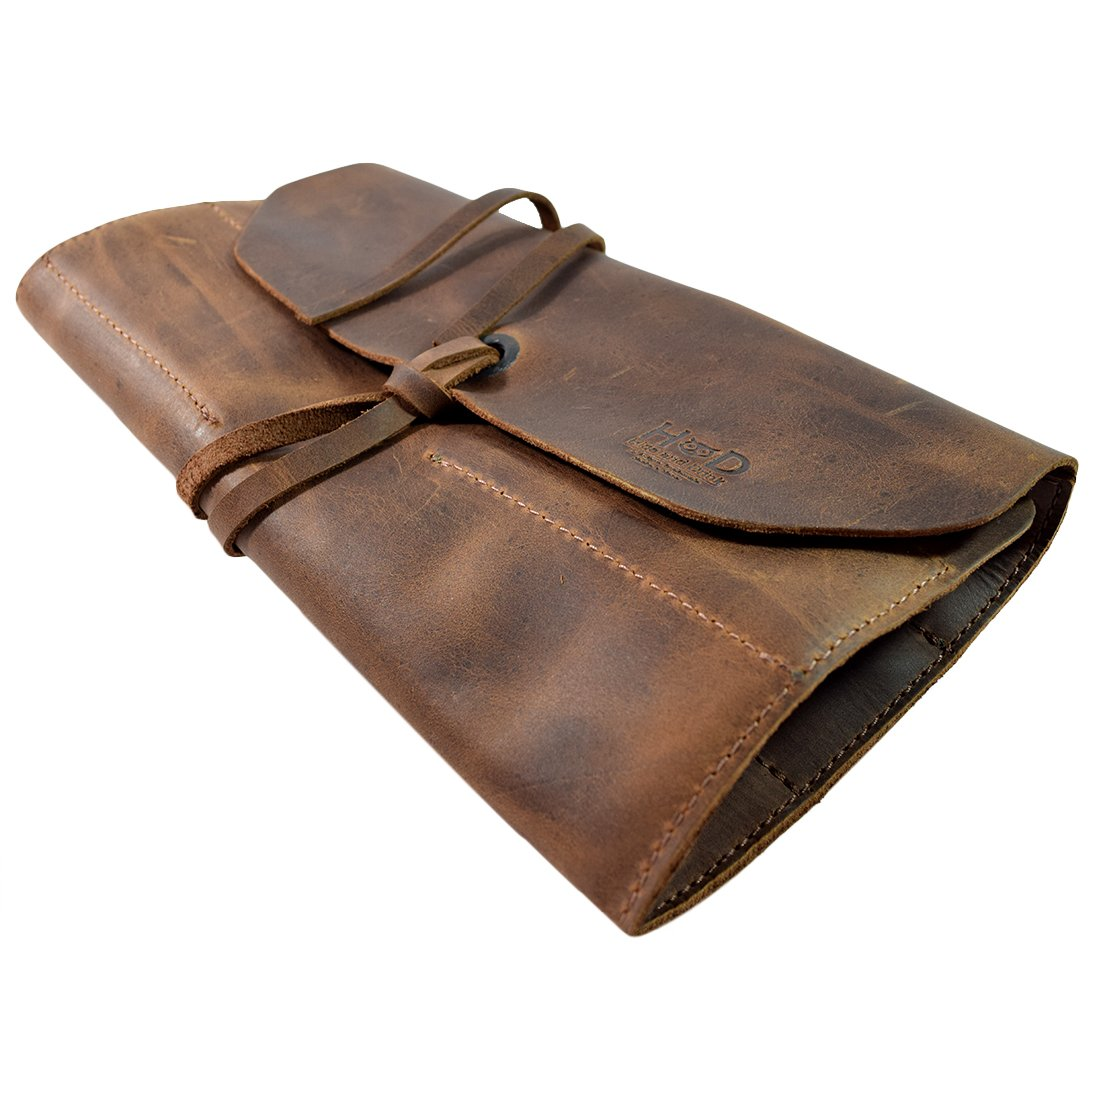 Rustic Leather Small Tool Roll Handmade by Hide & Drink :: Bourbon Brown by Hide & Drink (Image #6)